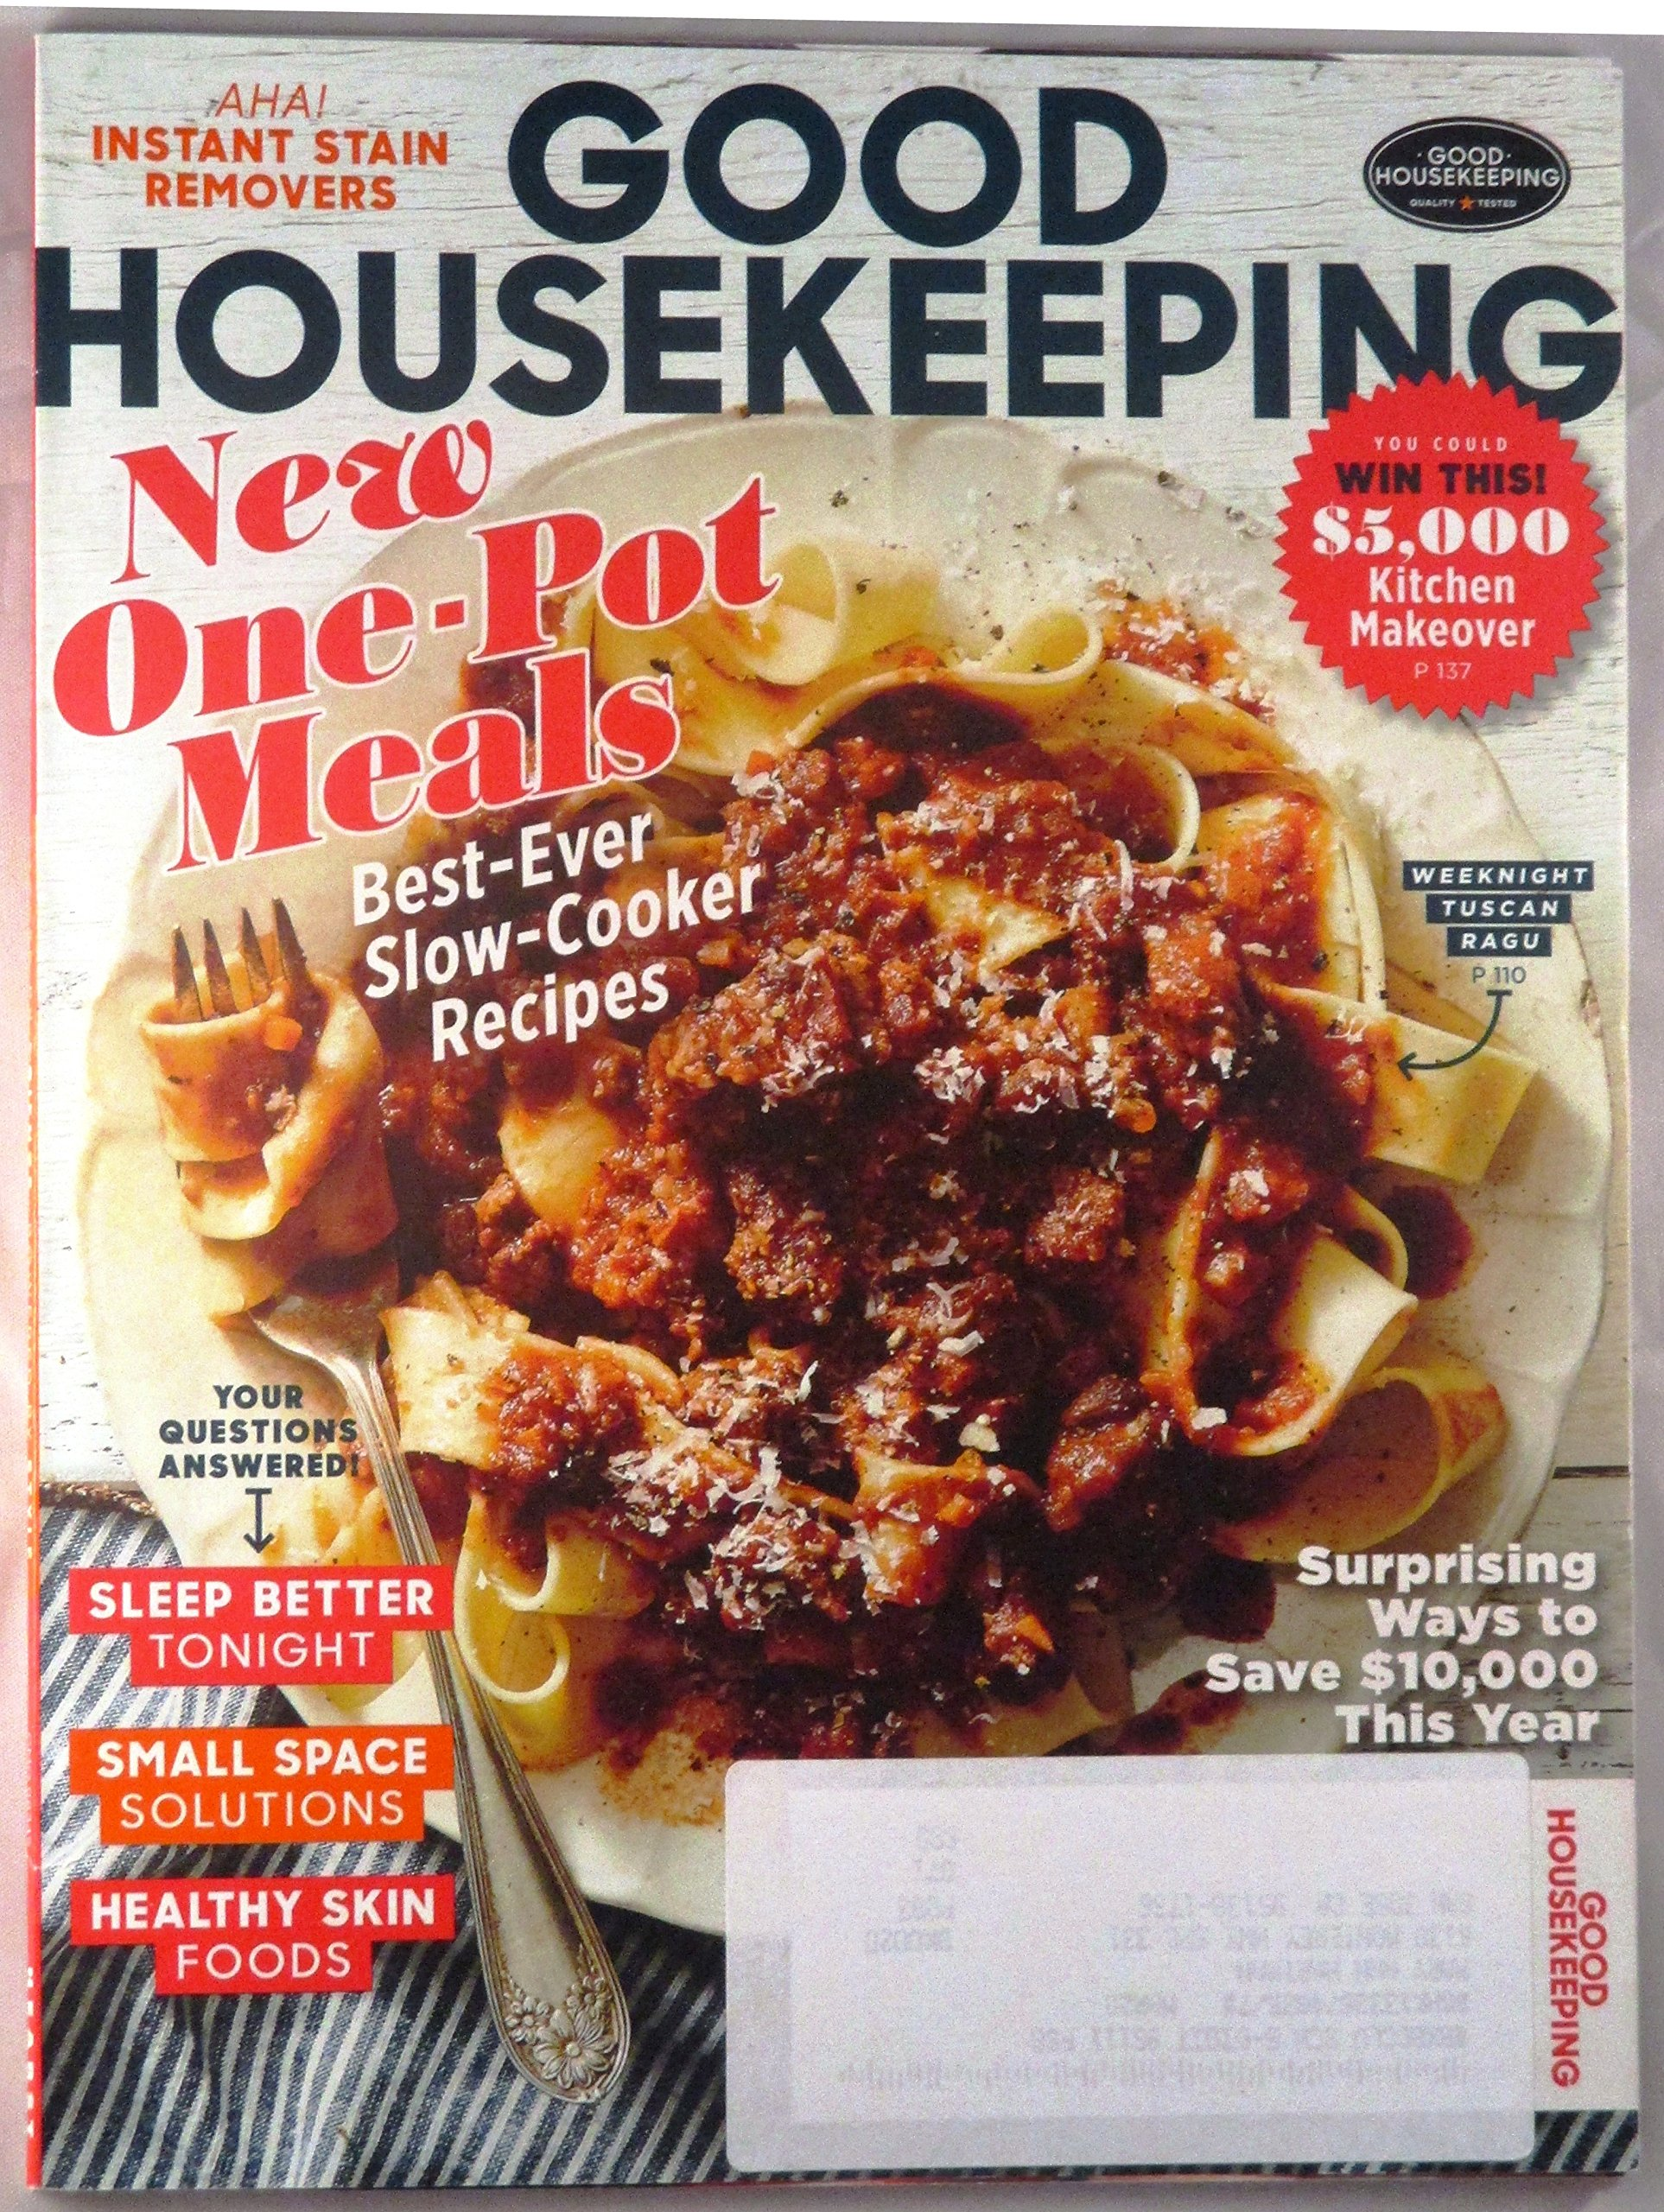 Download Good Housekeeping magazine (February 2017) New One-Pot Meals / Sleep Better Tonight / Surprising Ways to Save $10,000 This Year + More pdf